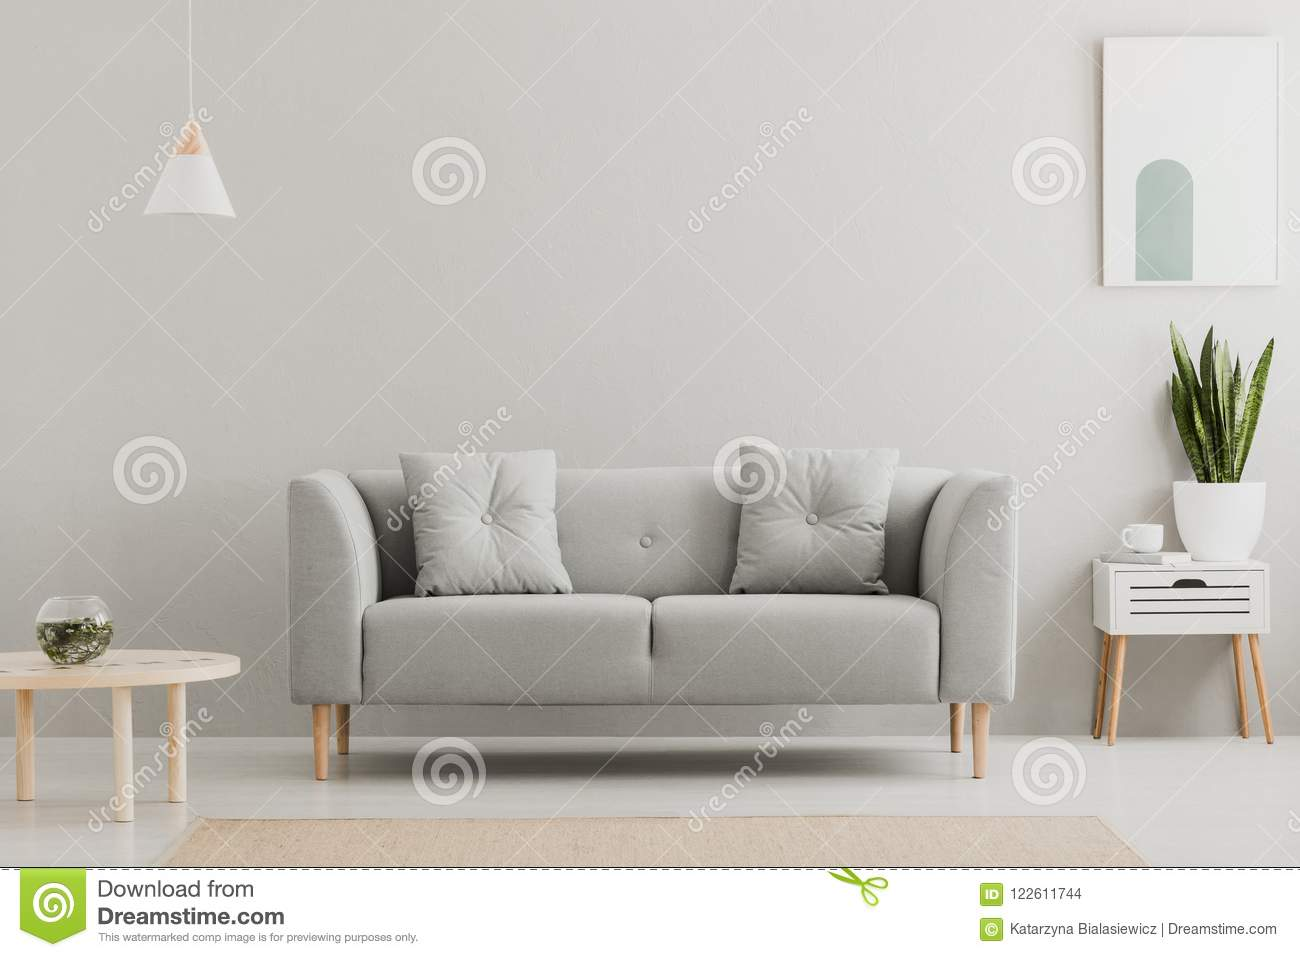 Green plant on a scandinavian cabinet with drawer and a cozy couch with pillows in a gray, simple living room interior with place